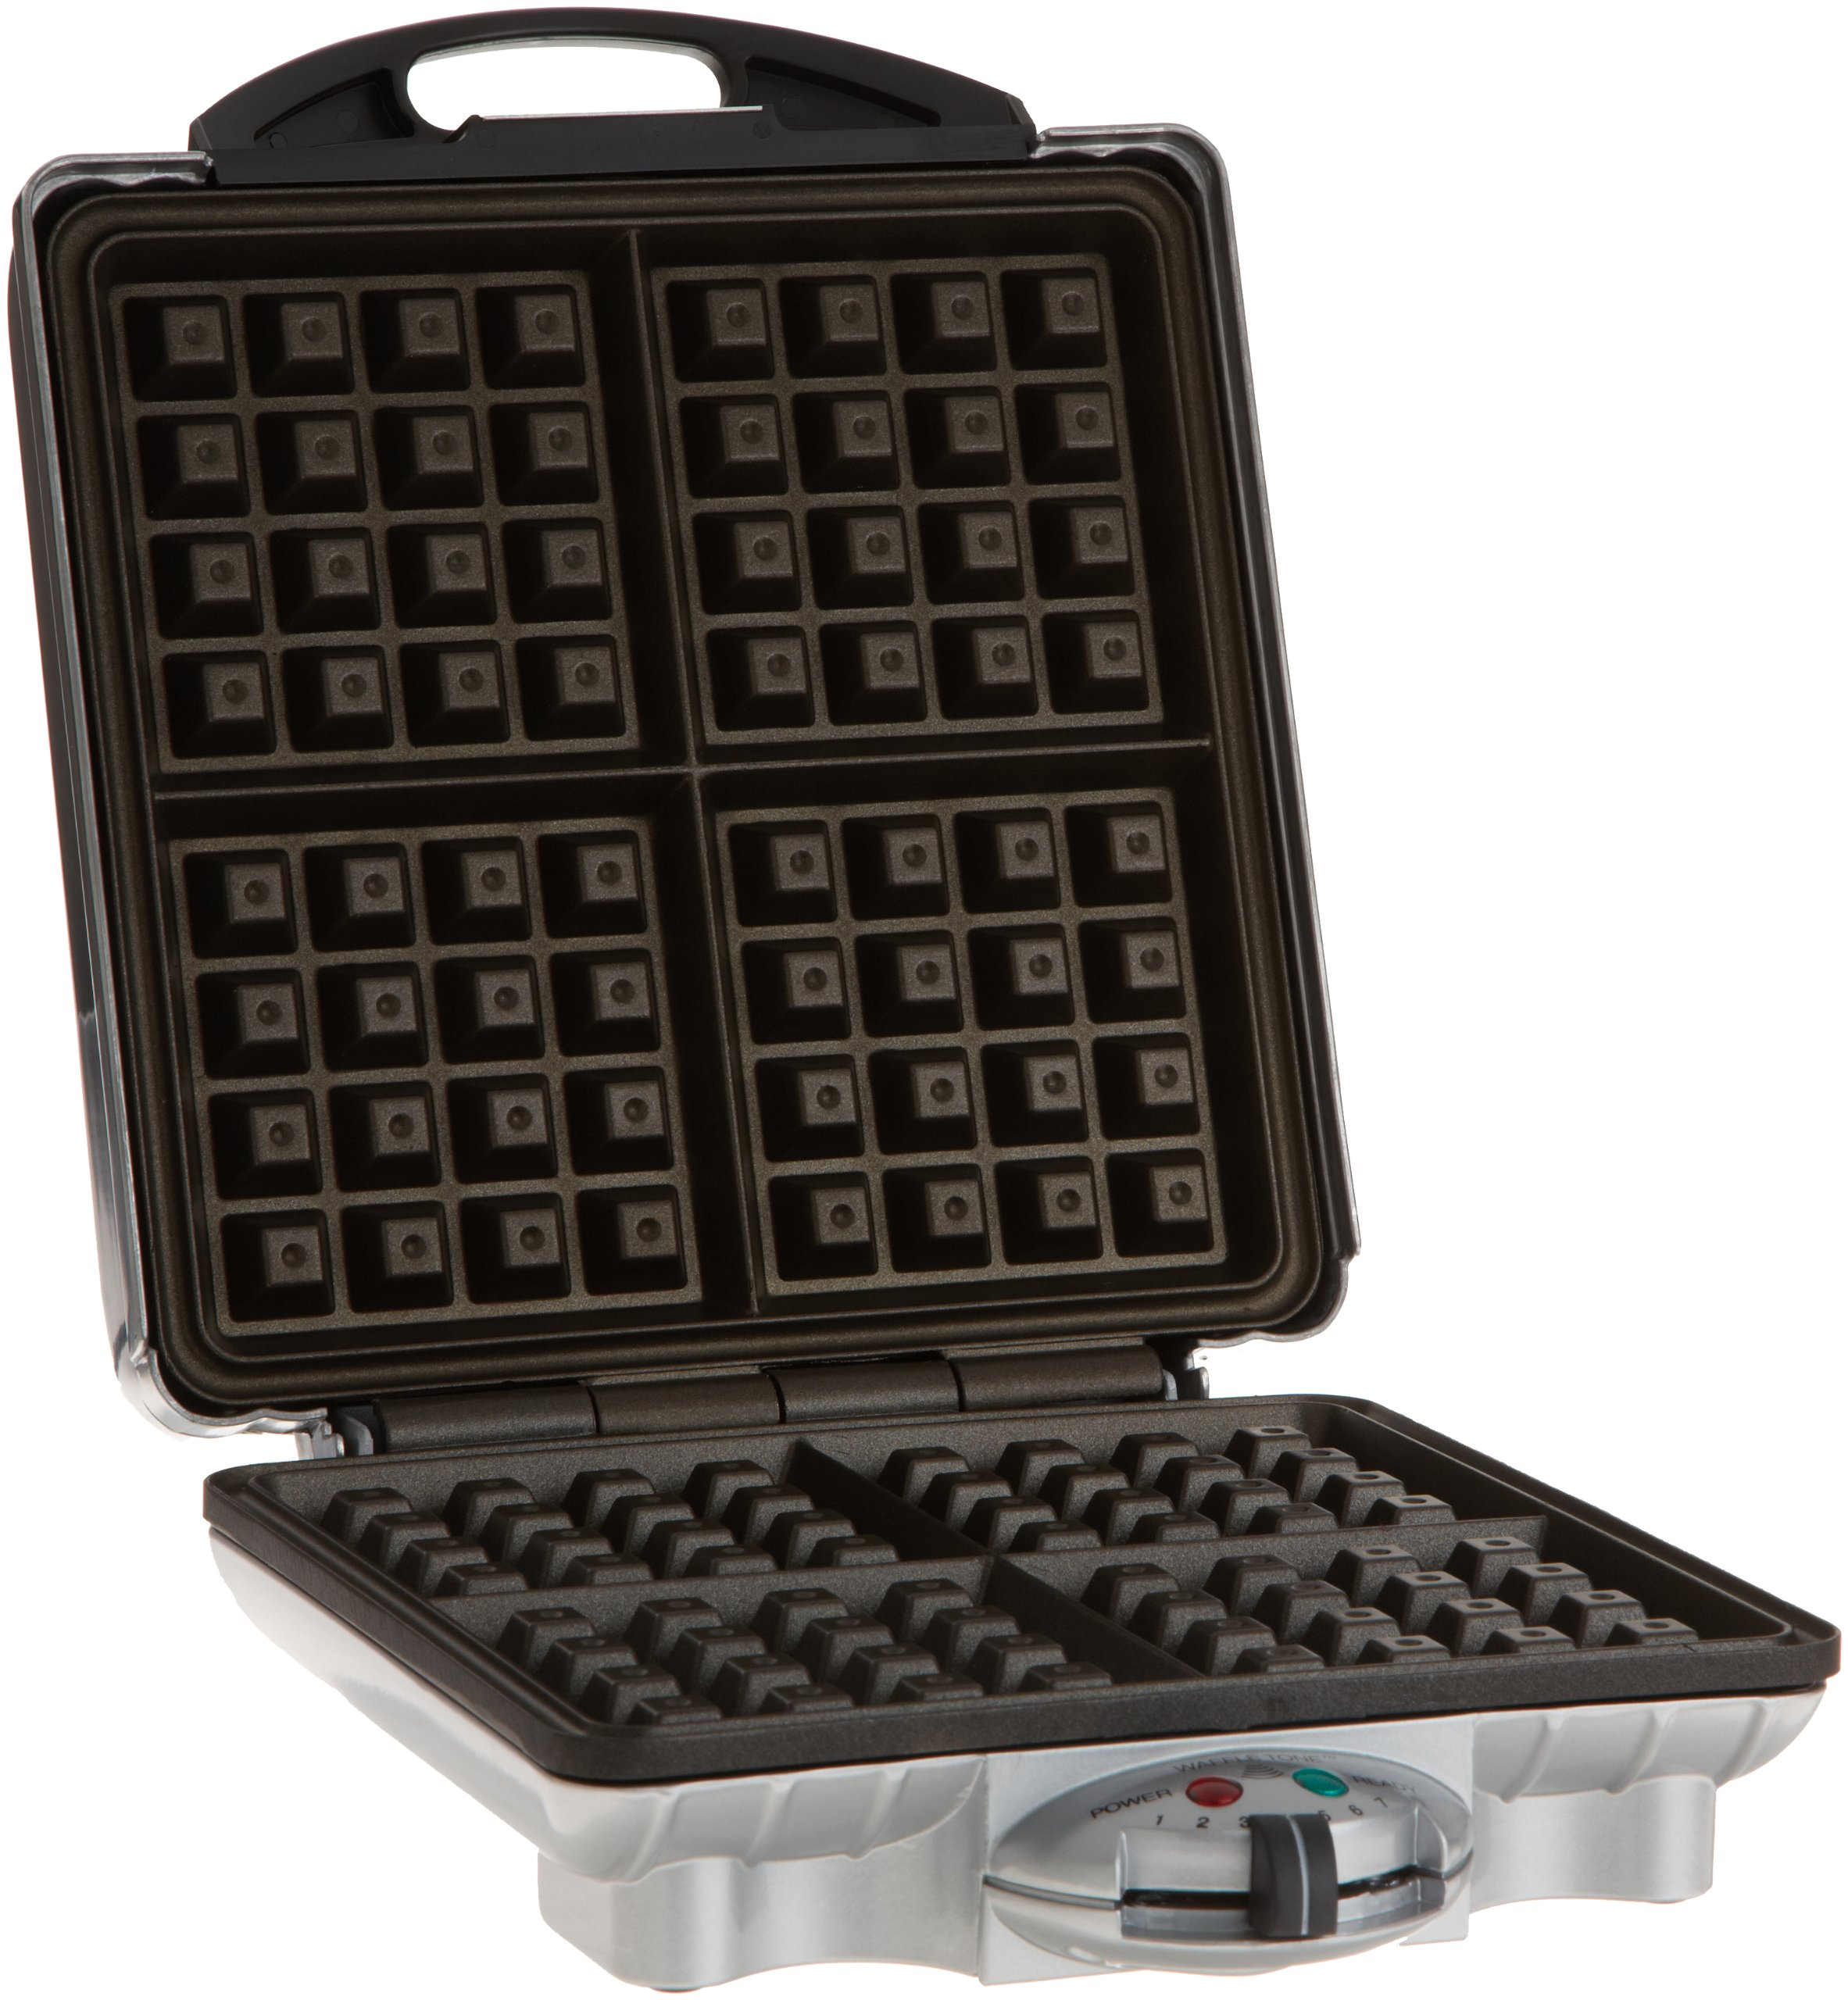 Four Square Extra Large Belgian Waffle Maker- Non-stick Family Size Retro Waffler Iron w Adjustable Browning Control- Beeps When Ready